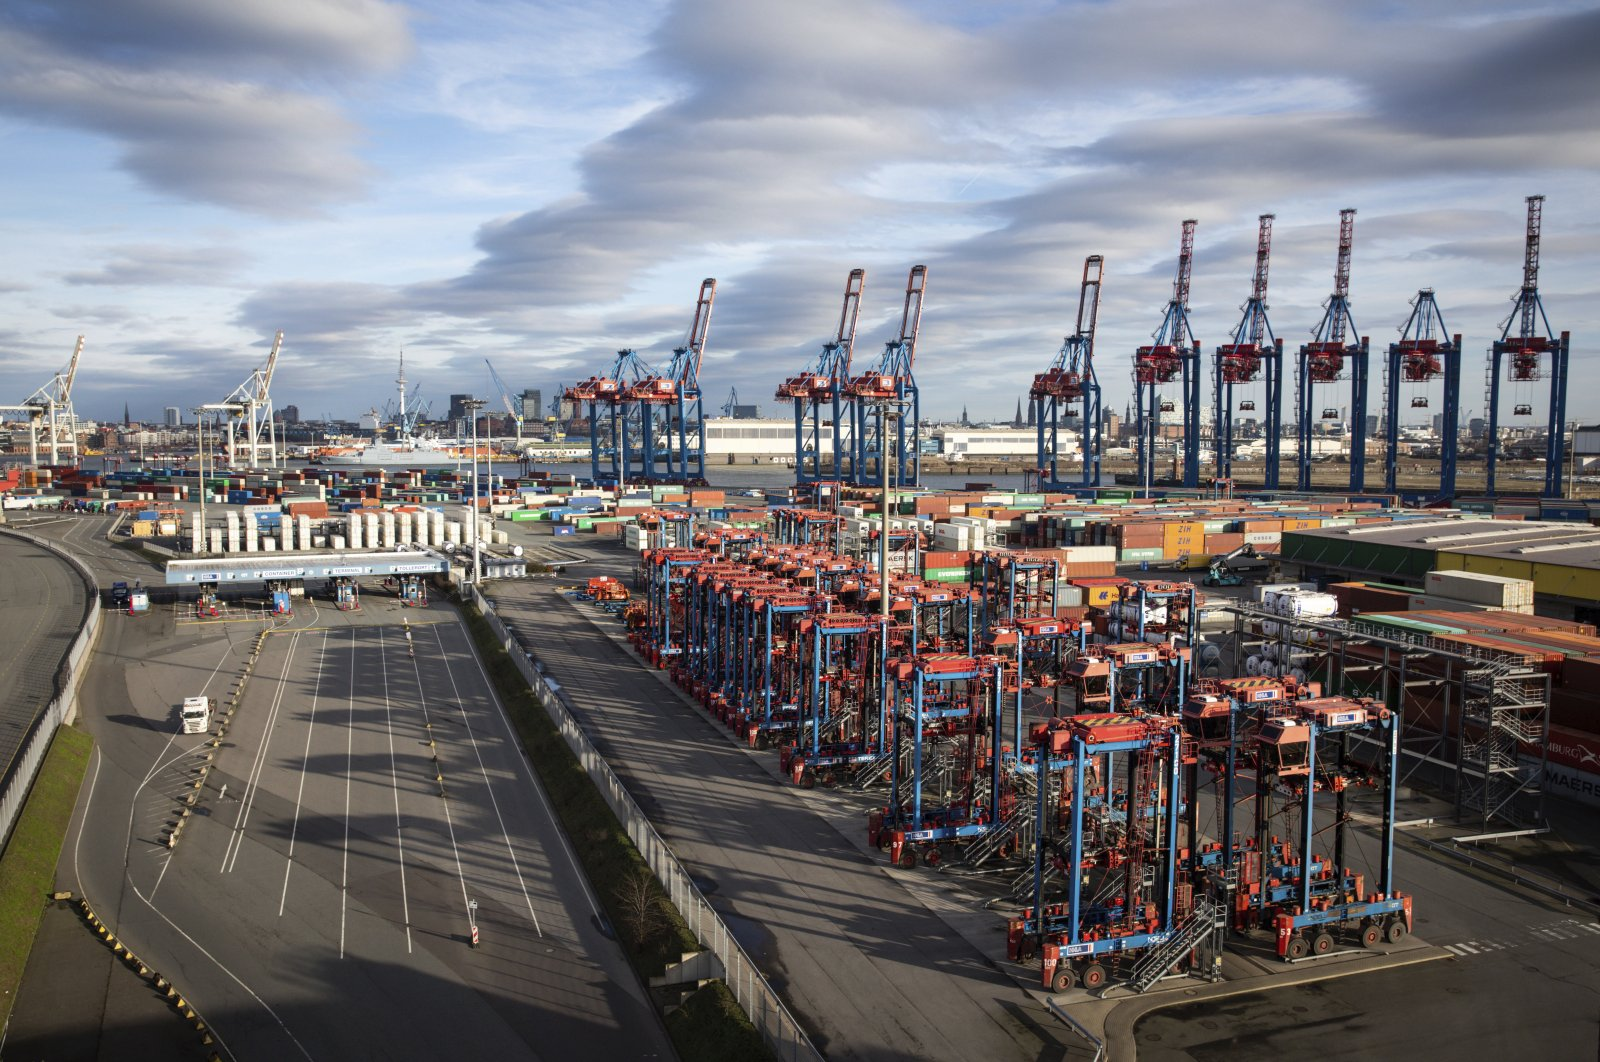 View on the Container Terminal Tollerort of Hamburg Hafen und Logistik AG Ports in Hamburg, Germany, Friday, March 20, 2020. (DPA via AP)